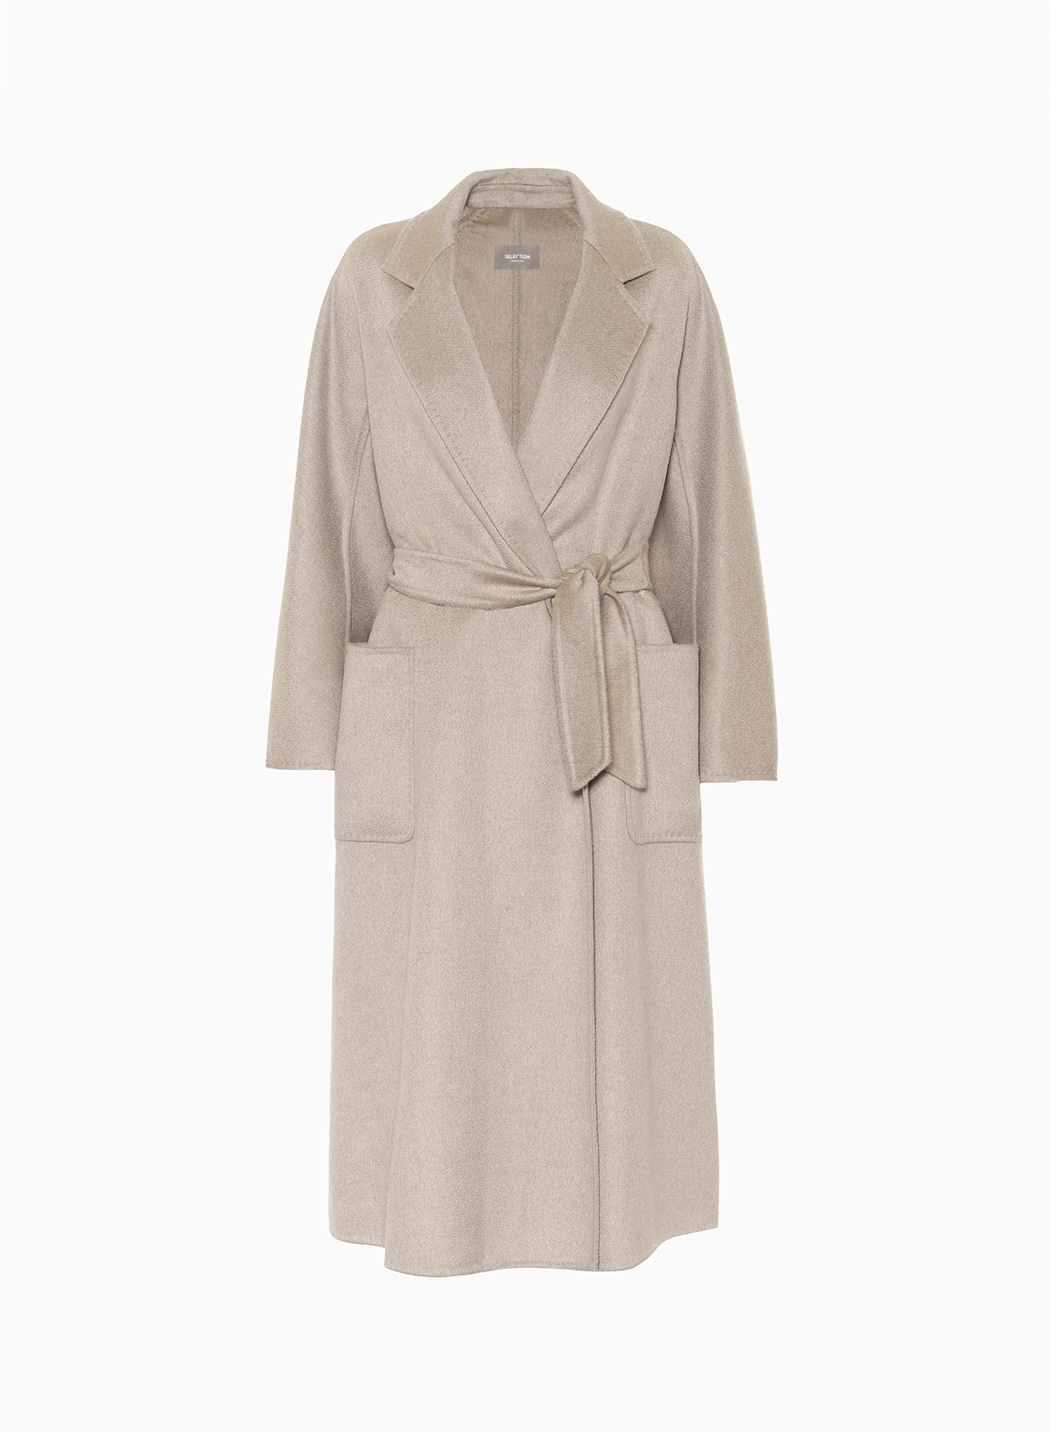 HAND MADE CASHMERE ROBE COAT_SAND BEIGE